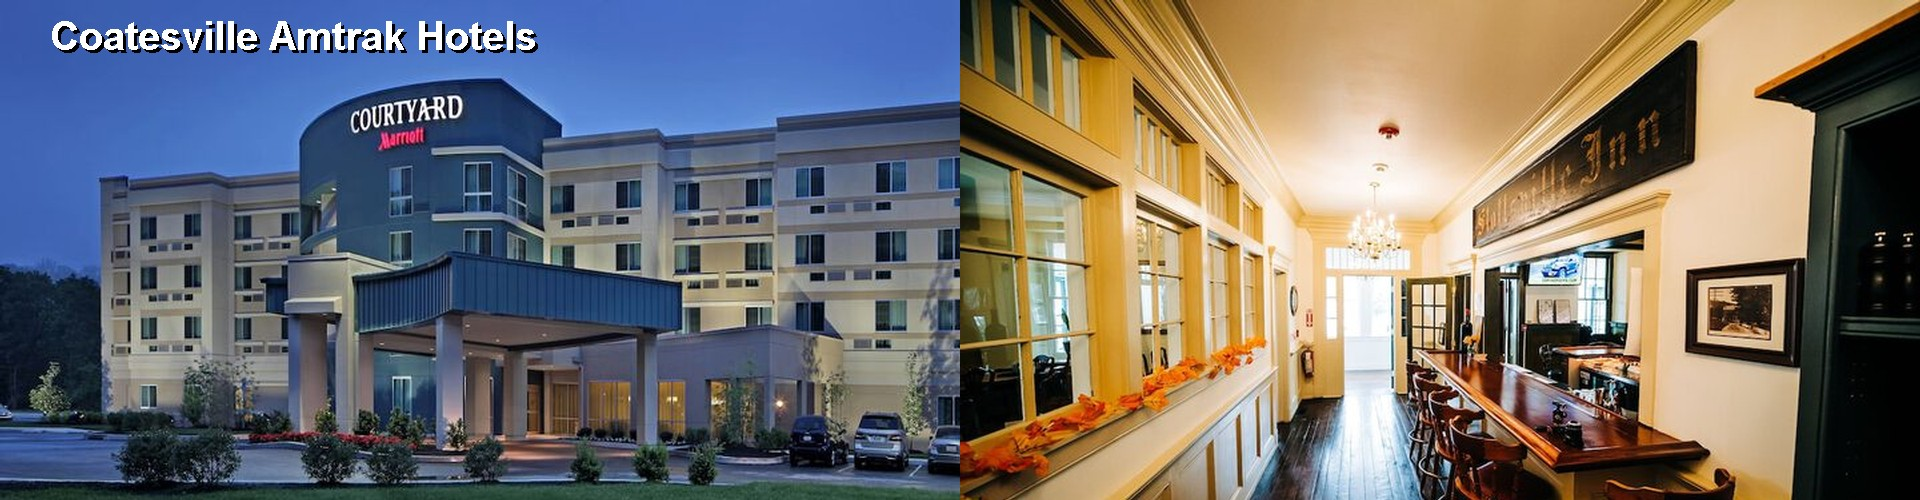 5 Best Hotels near Coatesville Amtrak